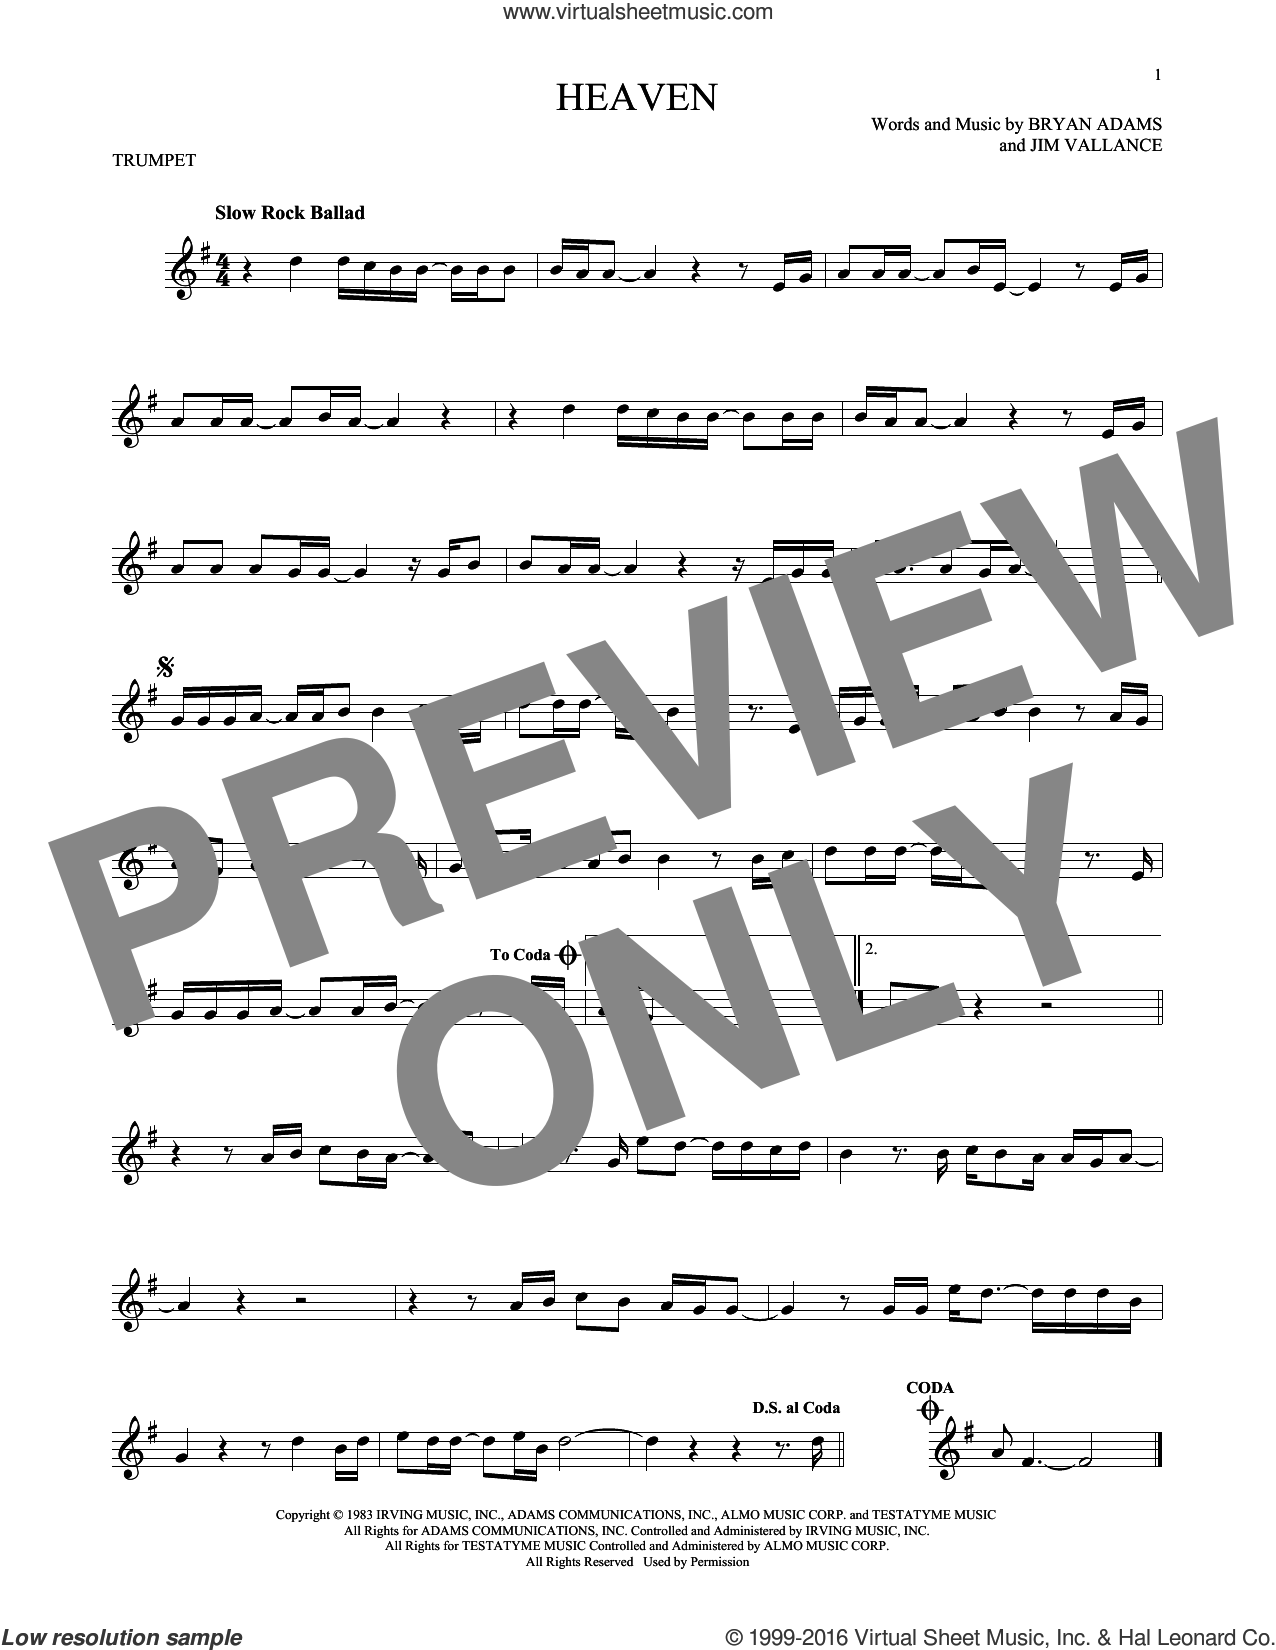 Heaven sheet music for trumpet solo by Bryan Adams and Jim Vallance, intermediate skill level